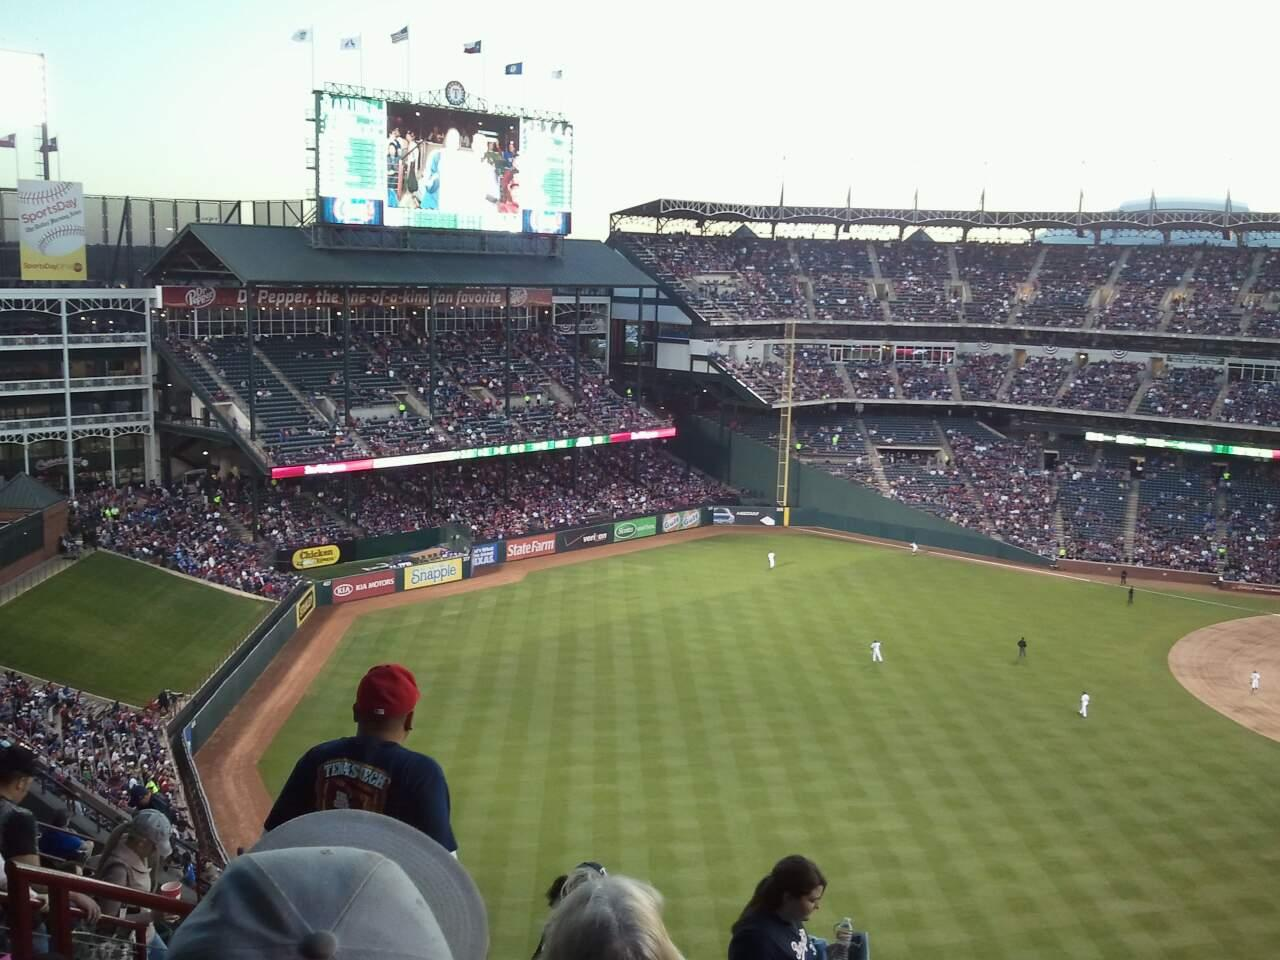 Globe Life Park in Arlington Section 306 Row 12 Seat 5